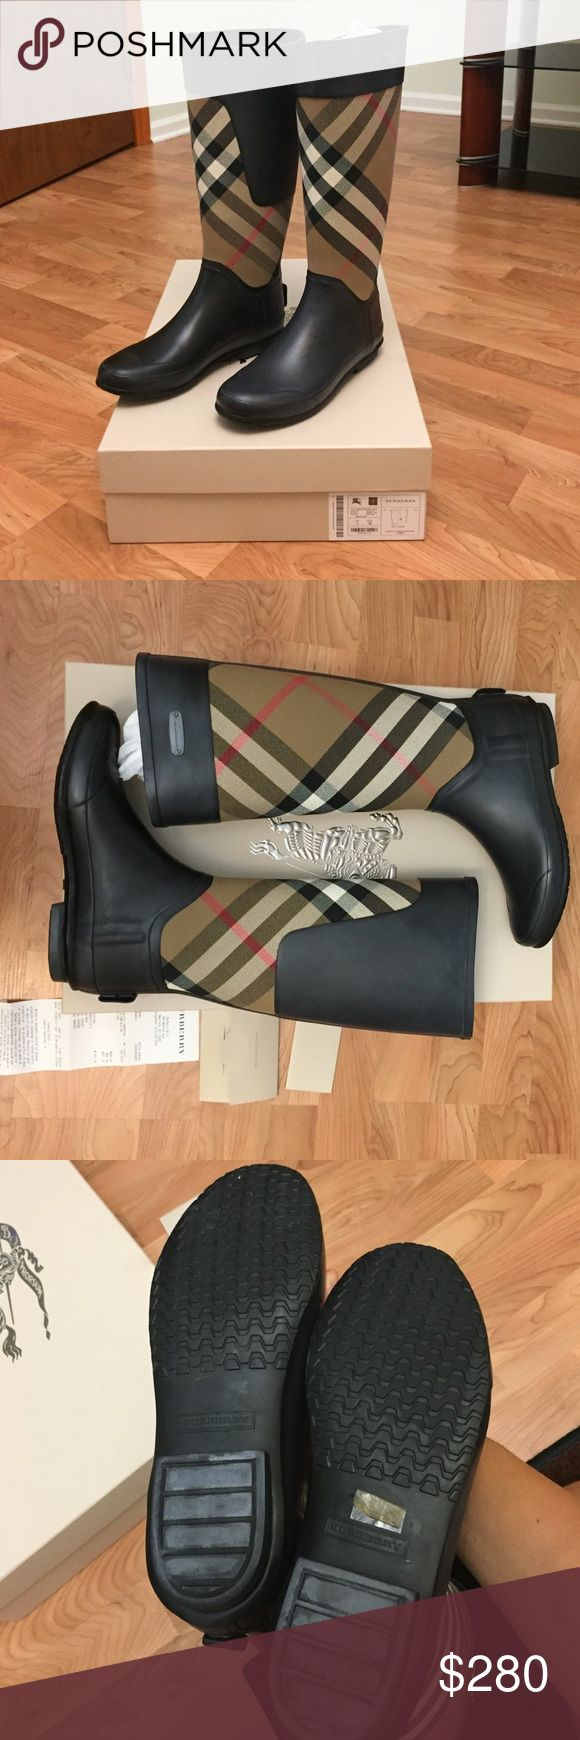 Burberry Clemence rain boots size Eur 38 Been worn only once! 55% rubber, 45% cotton.Imported.Burberry has created this product using high quality natural rubber. To clean, wipe with a damp cloth or wash with lukewarm, soapy water. Do not use solvents. Over time there may be a release of protective wax, leaving a fine white deposit. This is normal and does not affect the quality of the boots. To remove, please wipe boots with a damp cloth.Store out of direct sunlight in a cool, dry location…